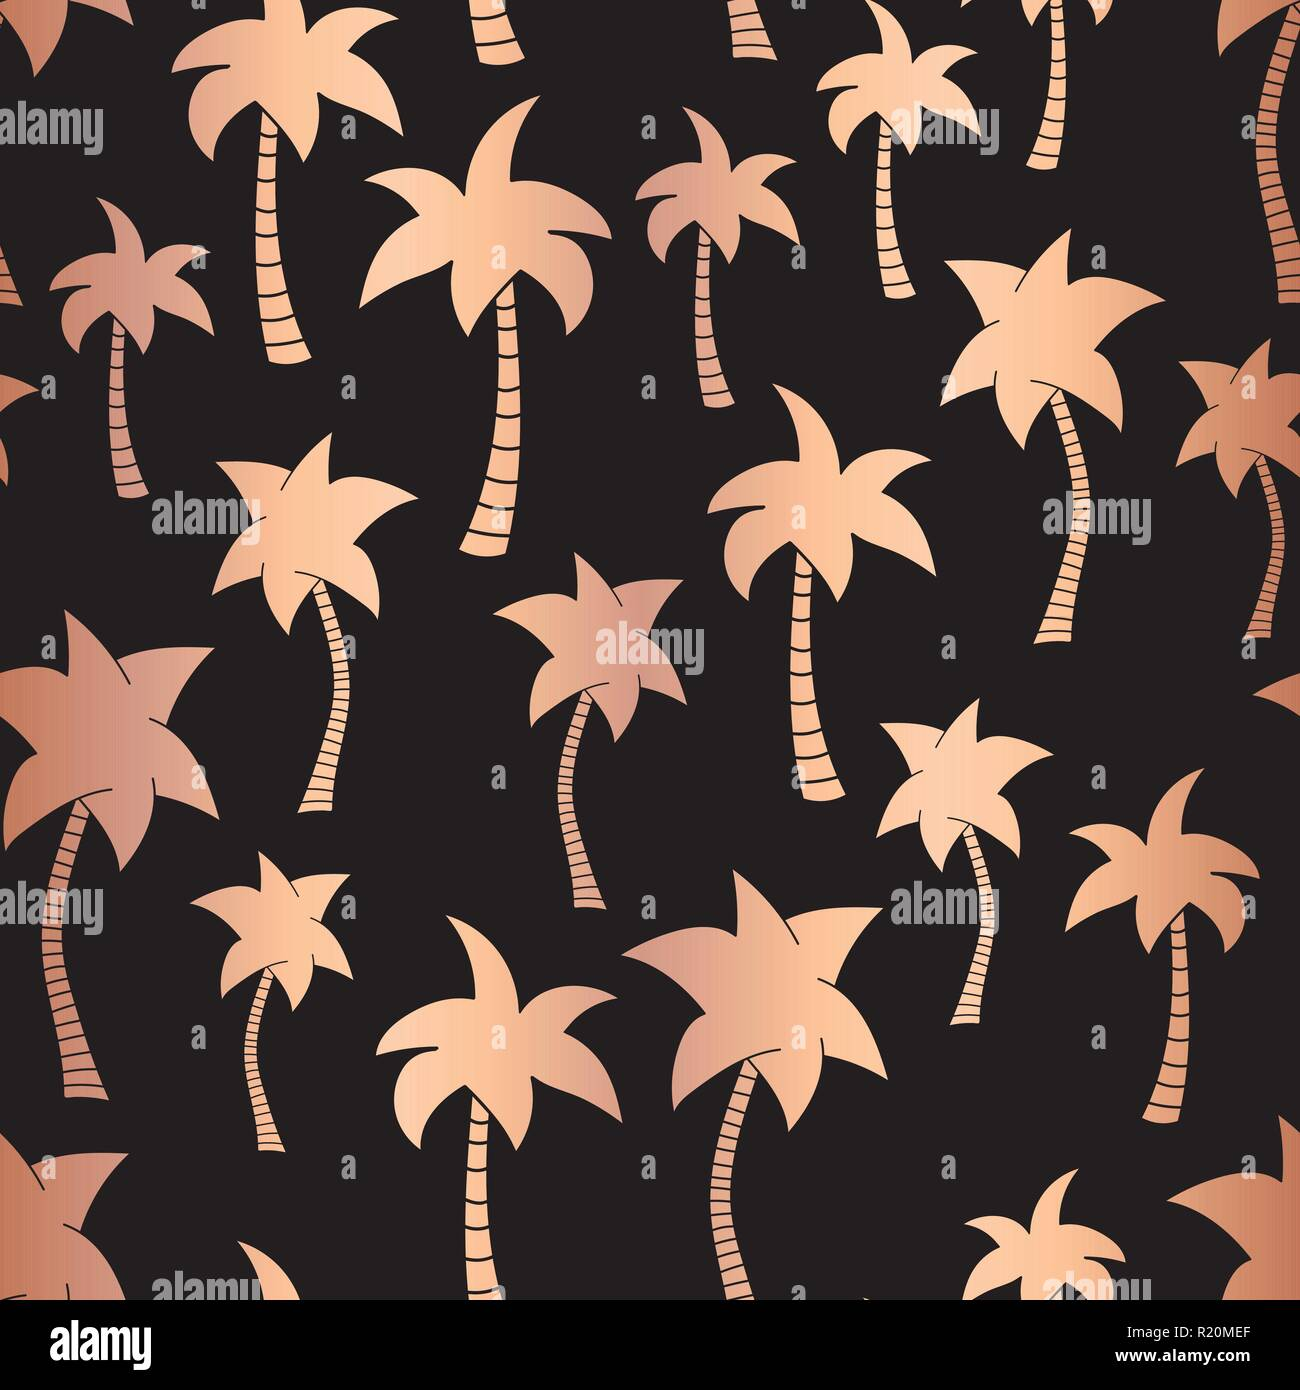 Vector Rose Gold Foil Palm Trees On Black Summer Seamless